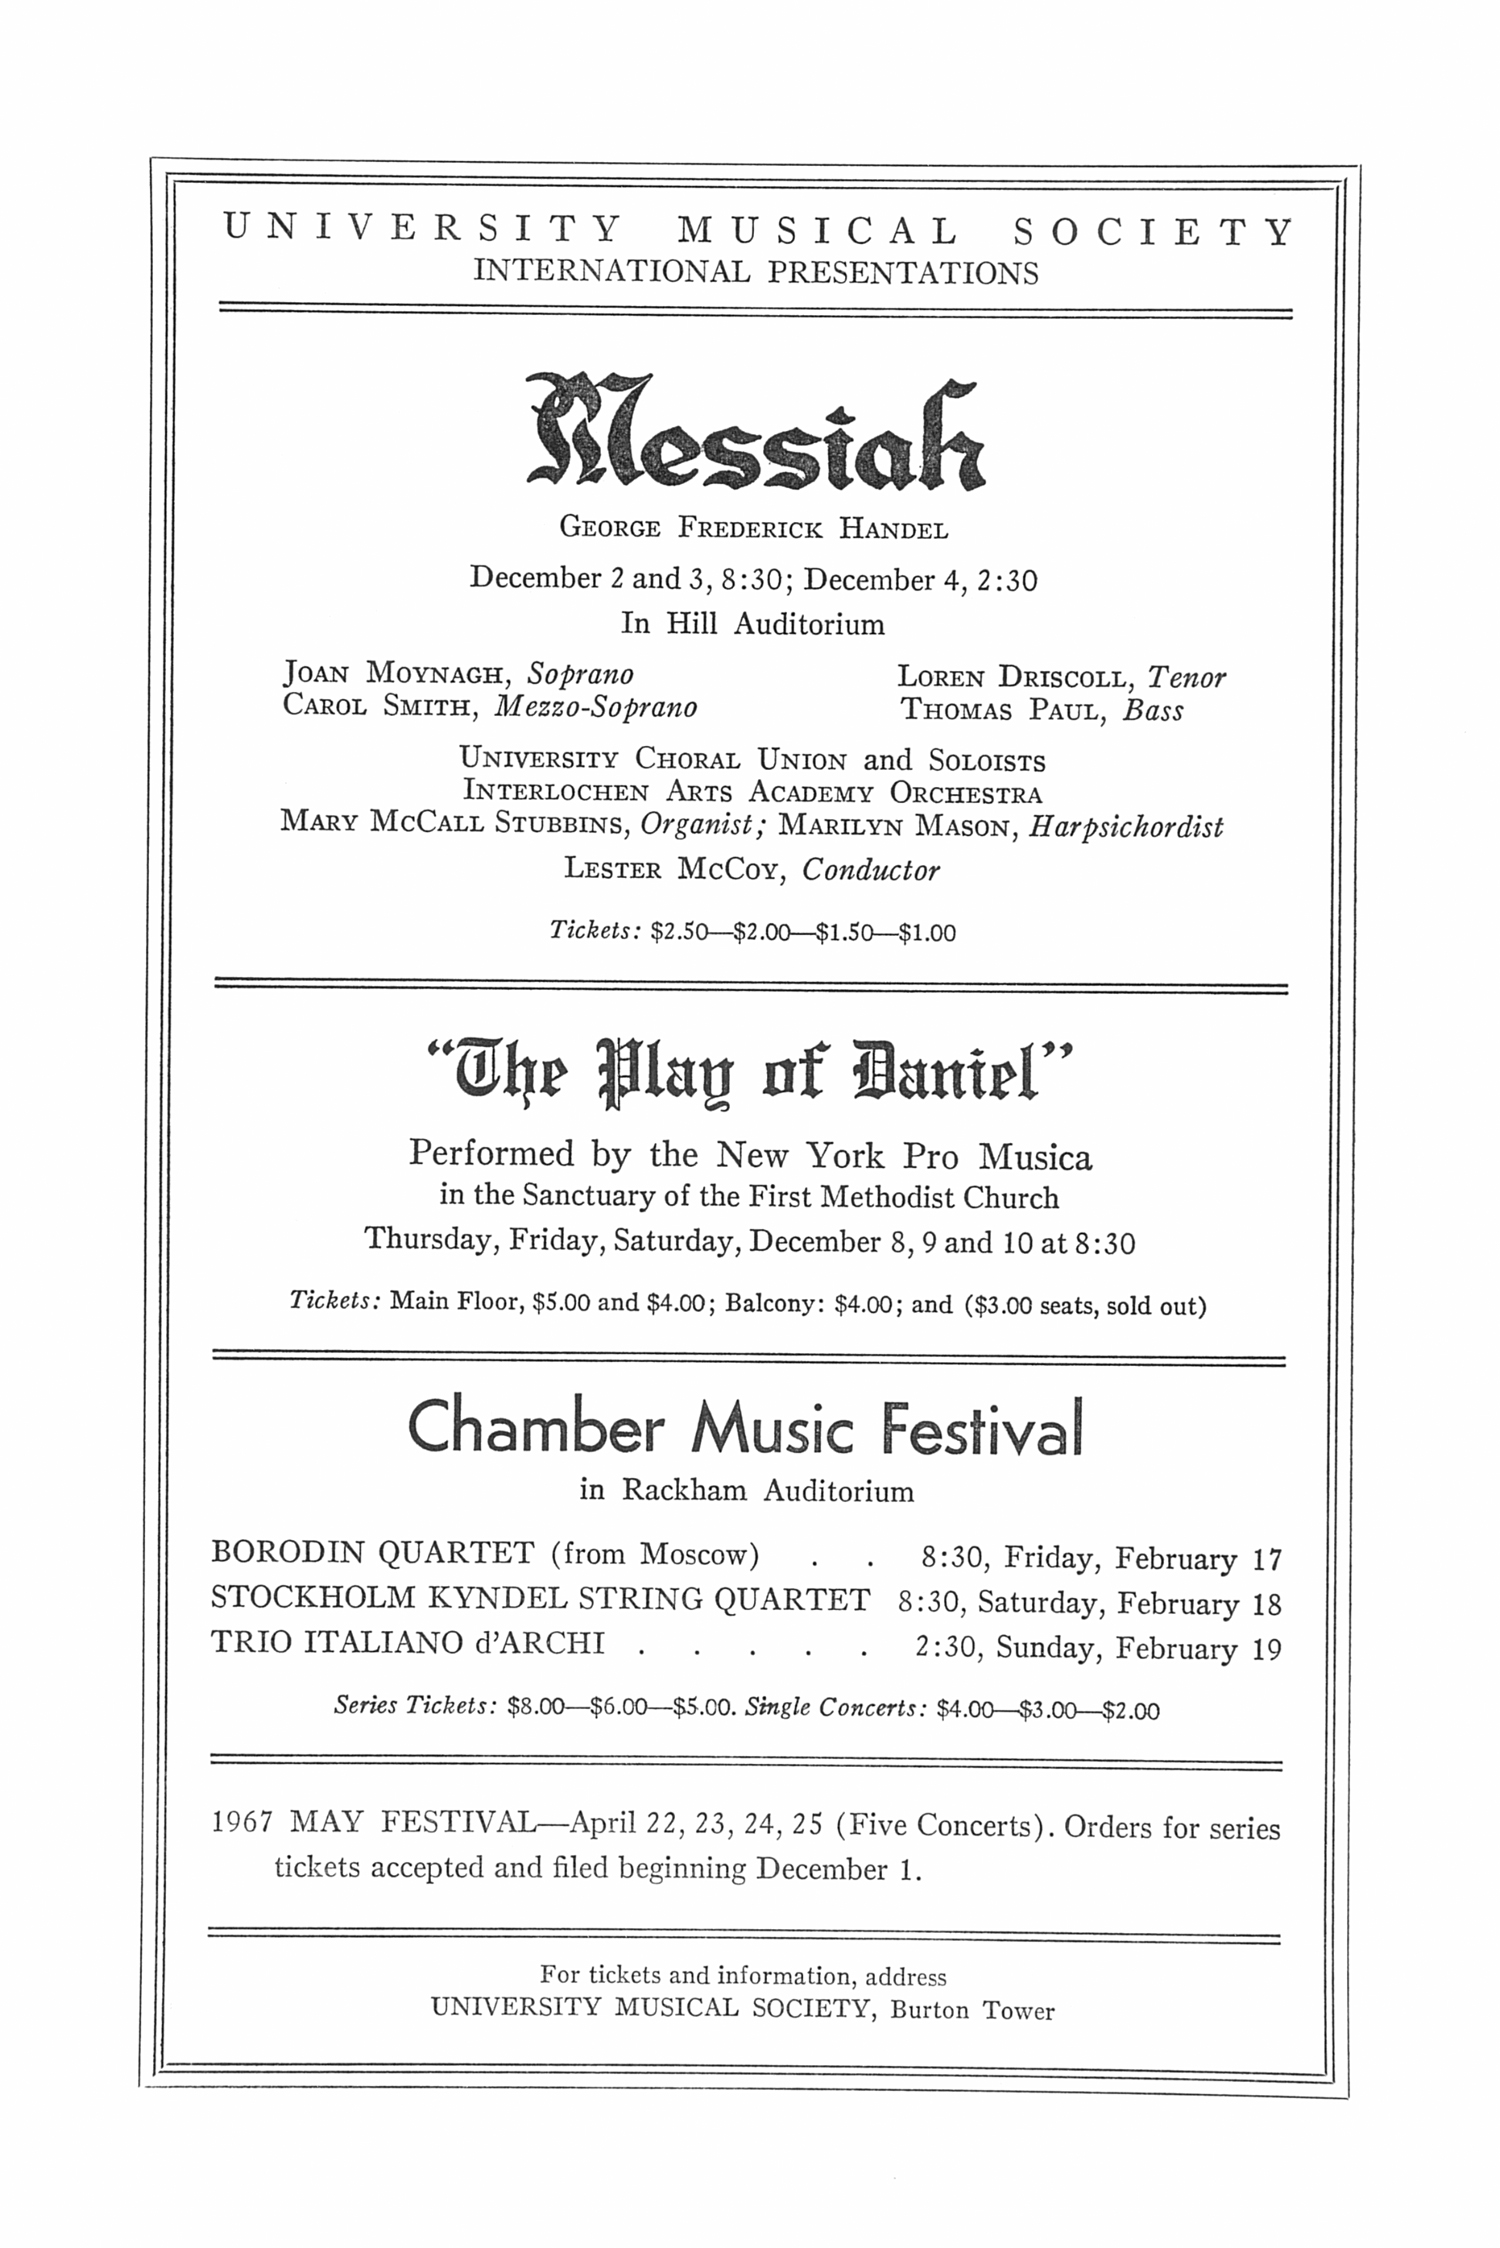 UMS Concert Program, November 20, 1966: Tosca -- Julius Rudel image